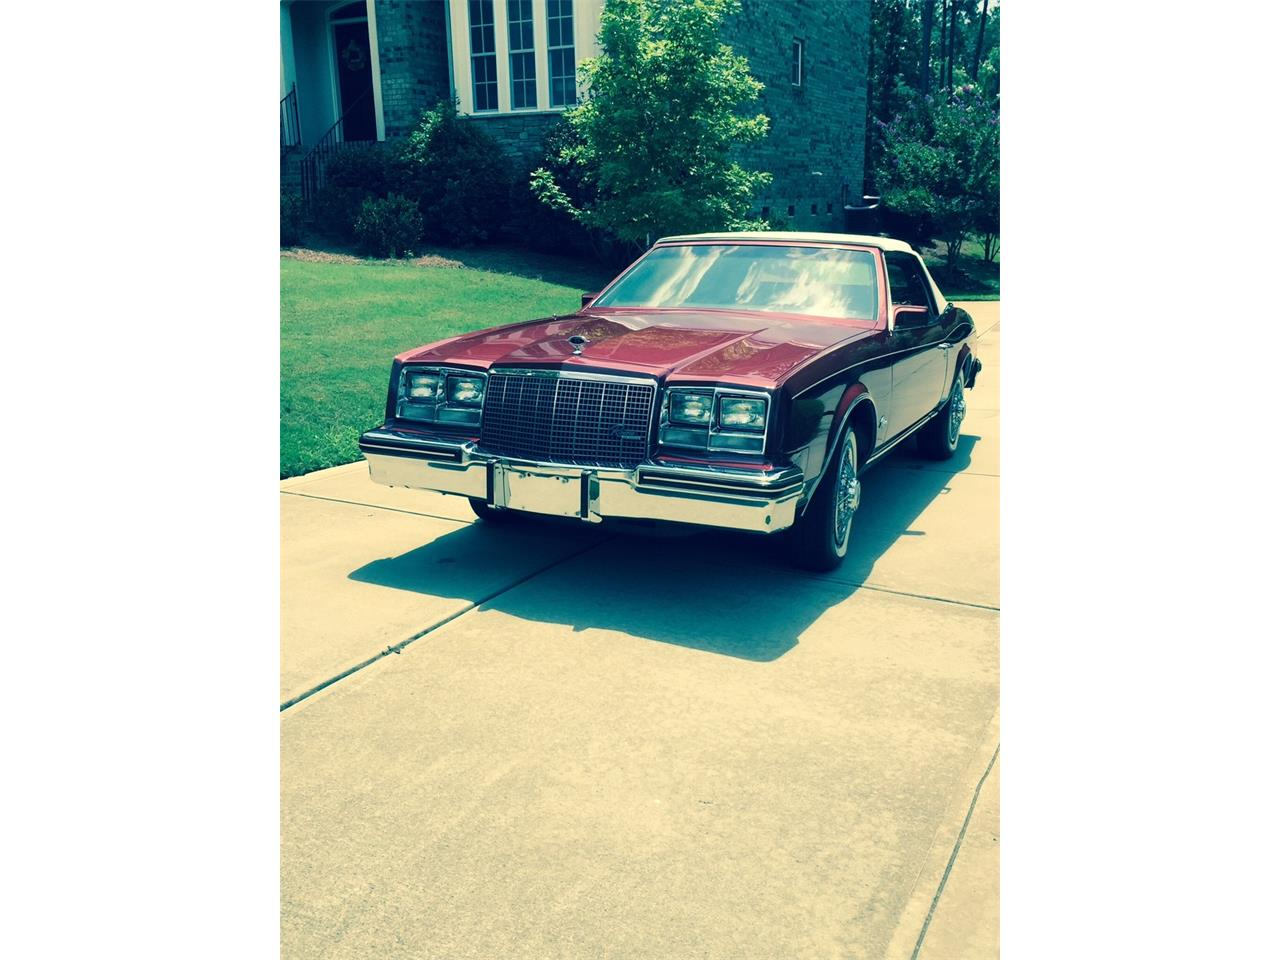 Large Picture of '82 Buick Riviera located in Georgia - $18,000.00 Offered by a Private Seller - L66P